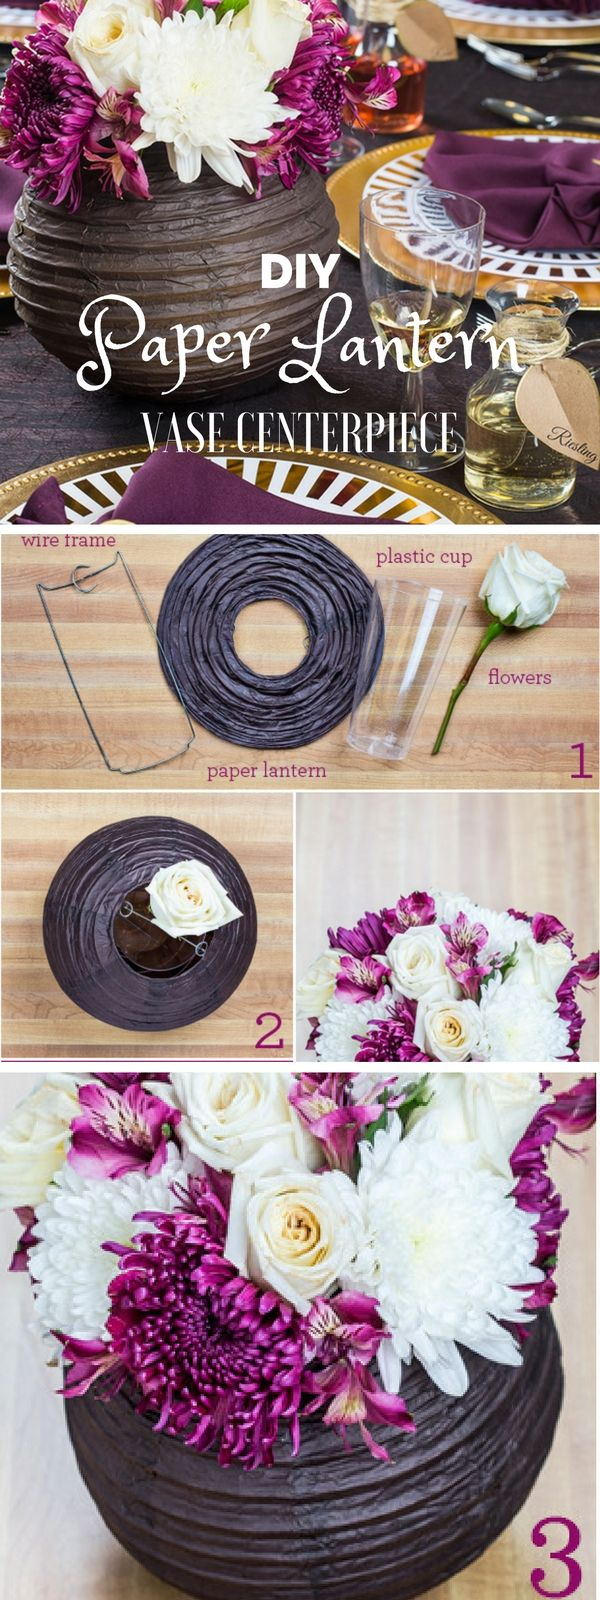 Diy decorations for wedding   best atmospheric inspirations images on Pinterest